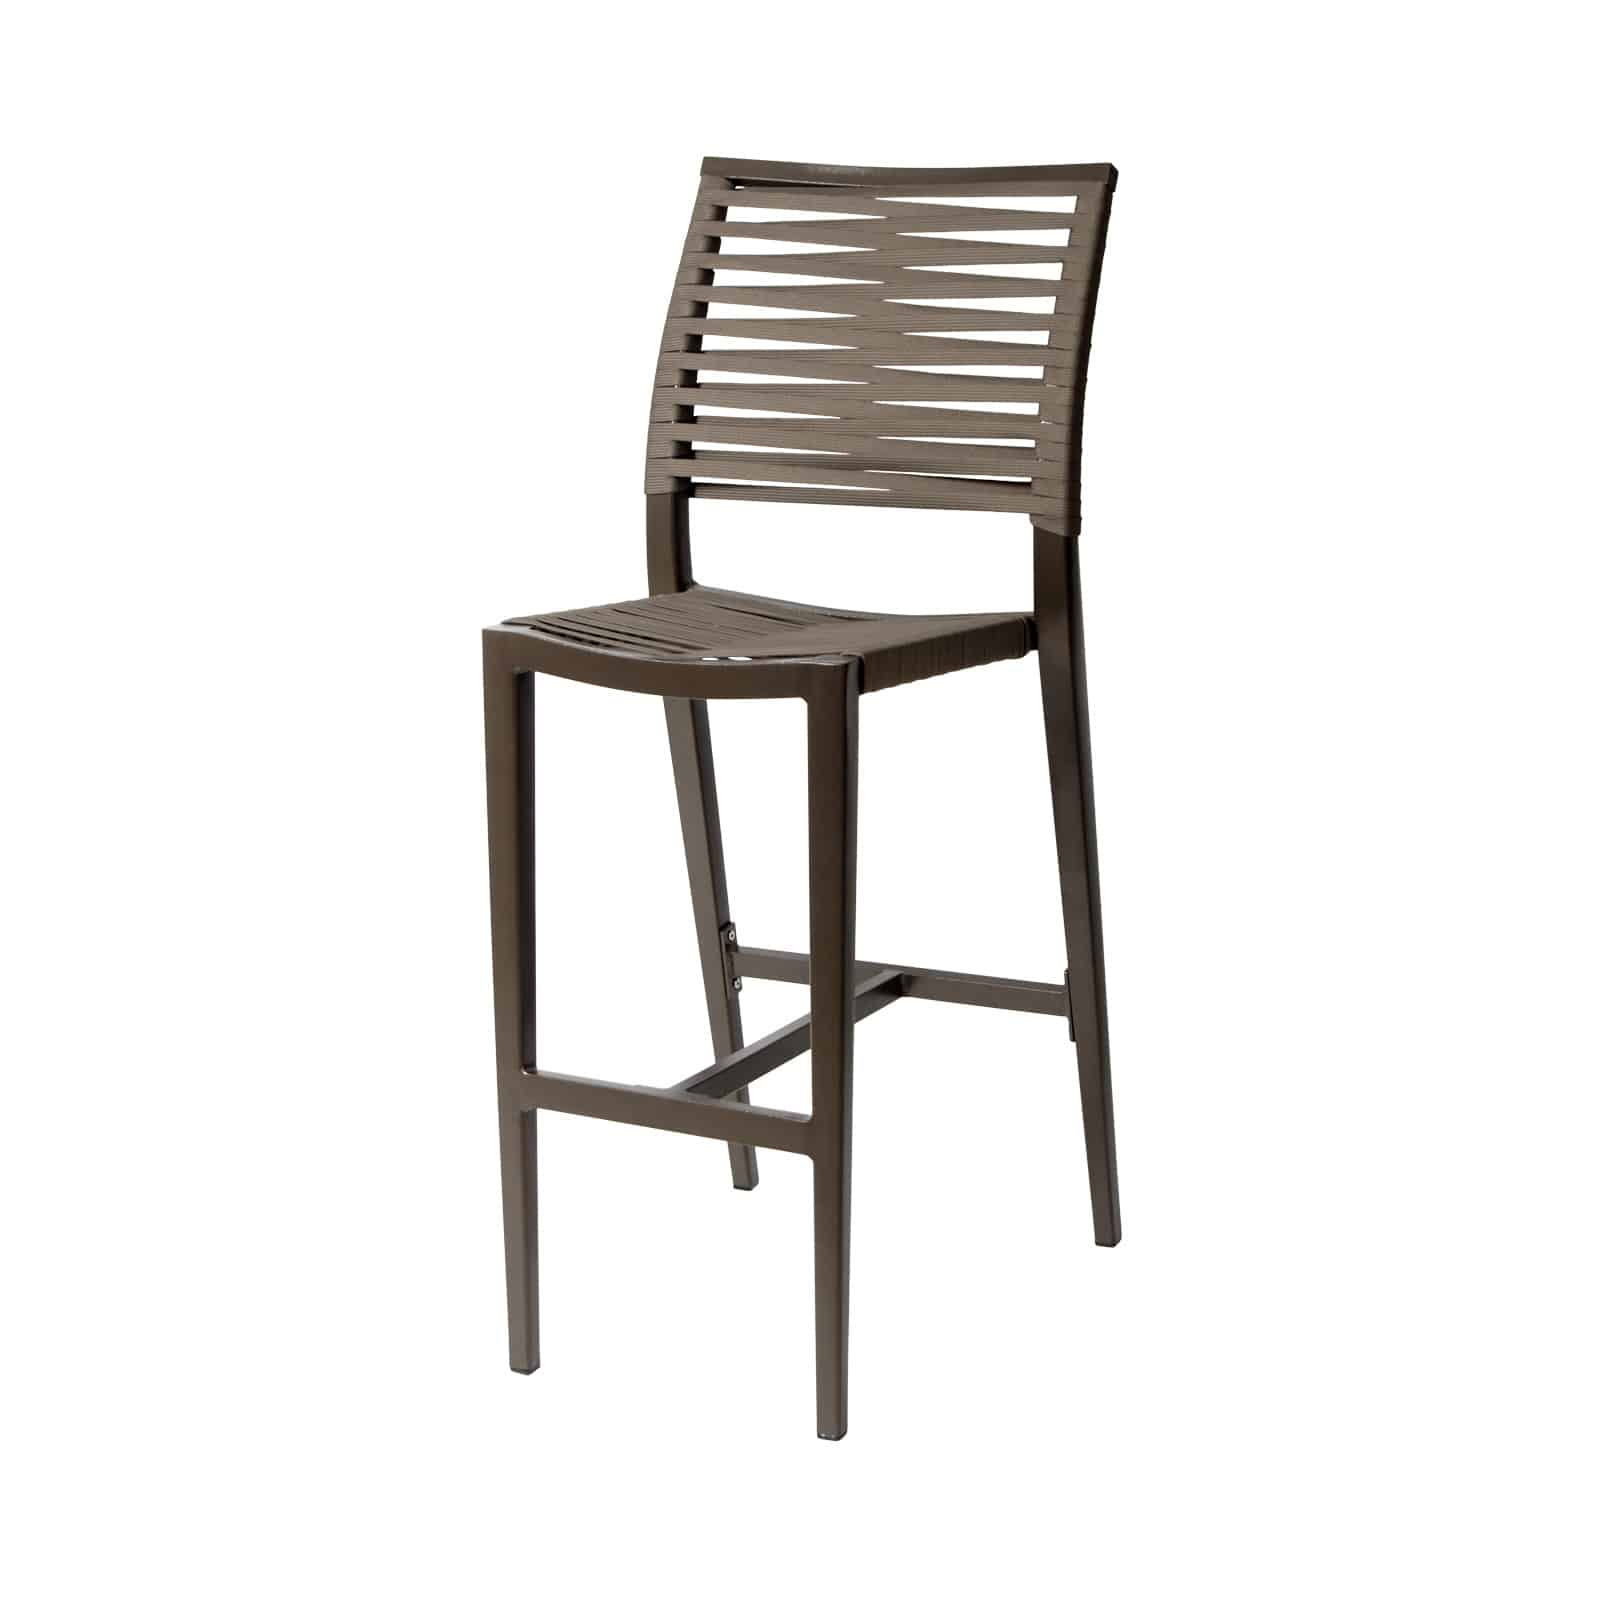 Source Furniture Source Furniture Chloe Rope Bar Side Chair Bar Stool - Rattan Imports